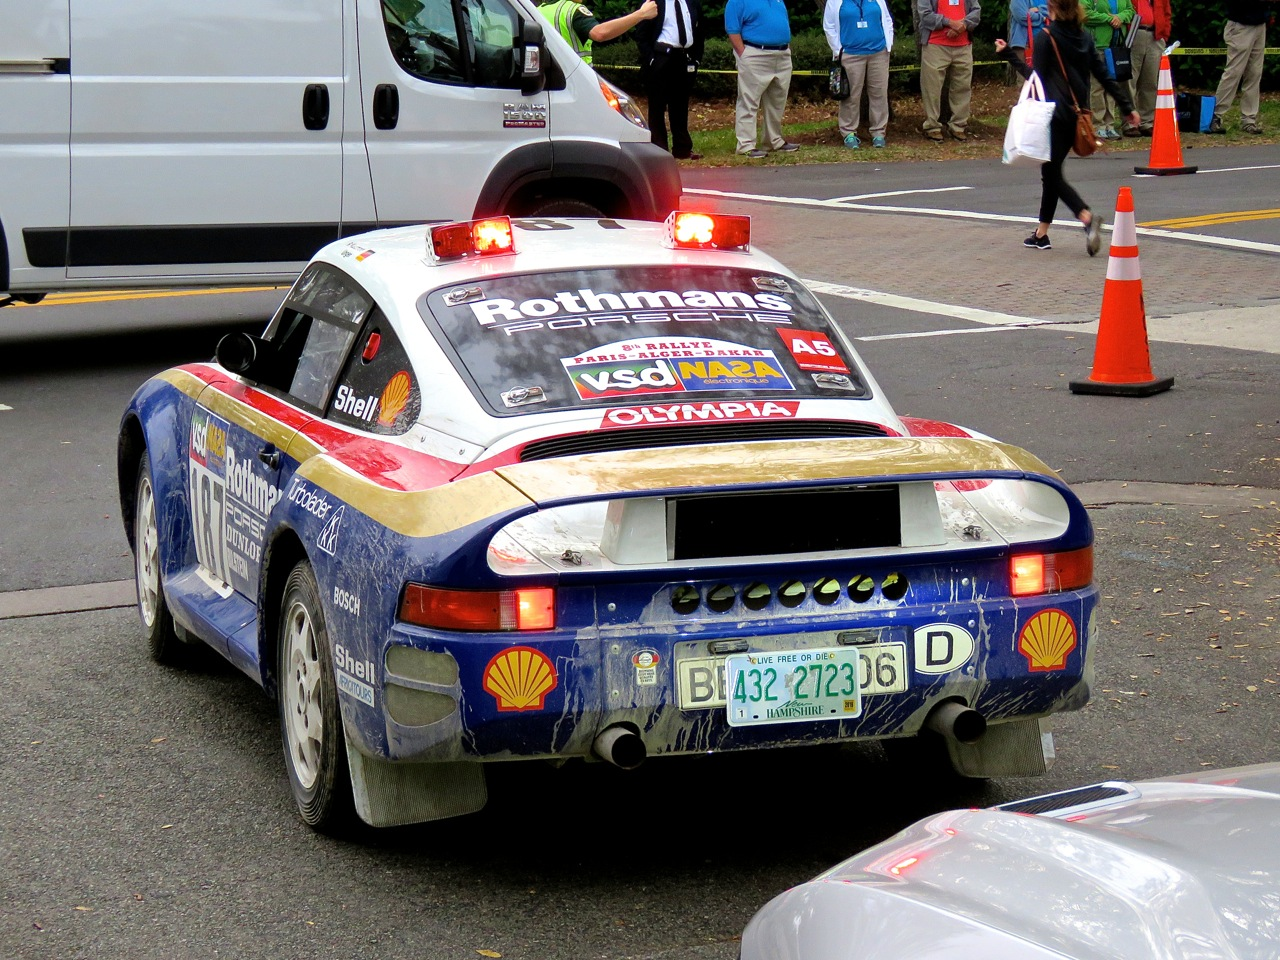 Porsche 959 Group B Rally Car Amelia Island 2